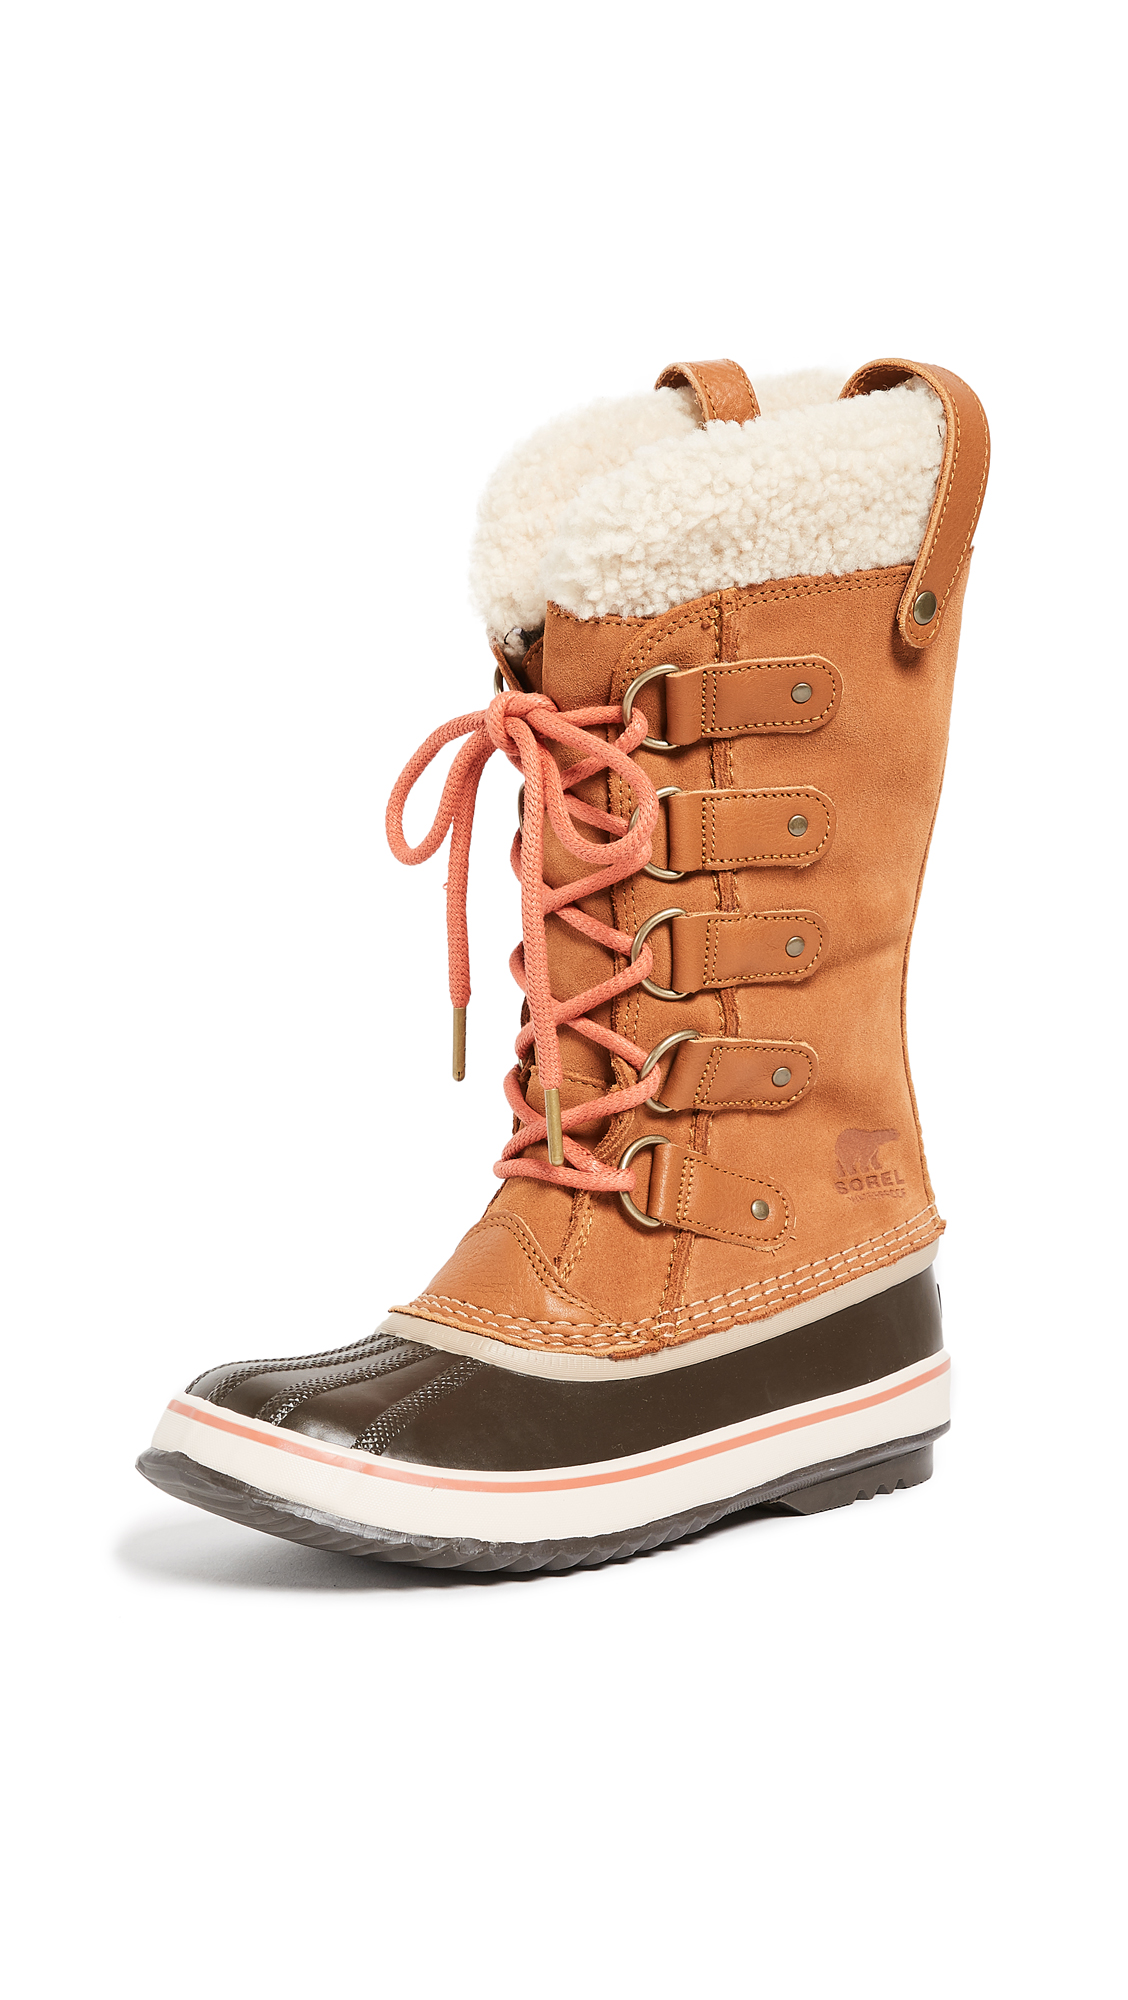 Sorel Joan of Arctic Shearling Boots - Elk